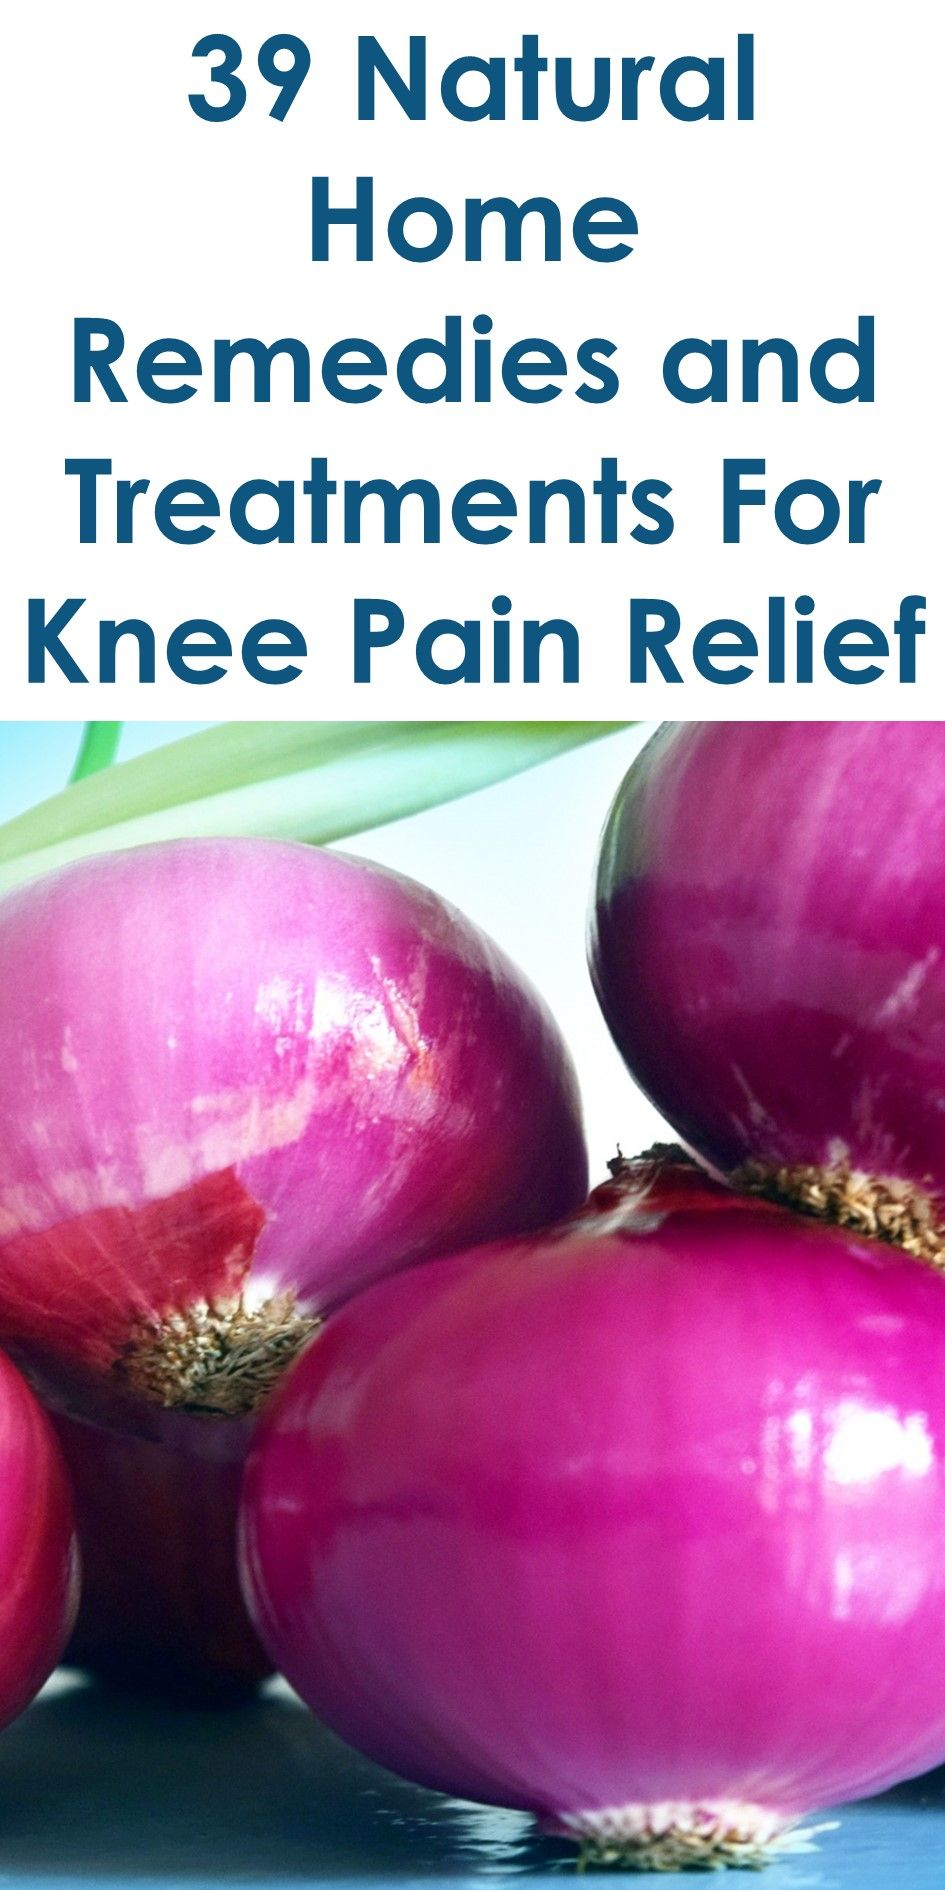 39 natural home remedies and treatments for knee pain relief: this